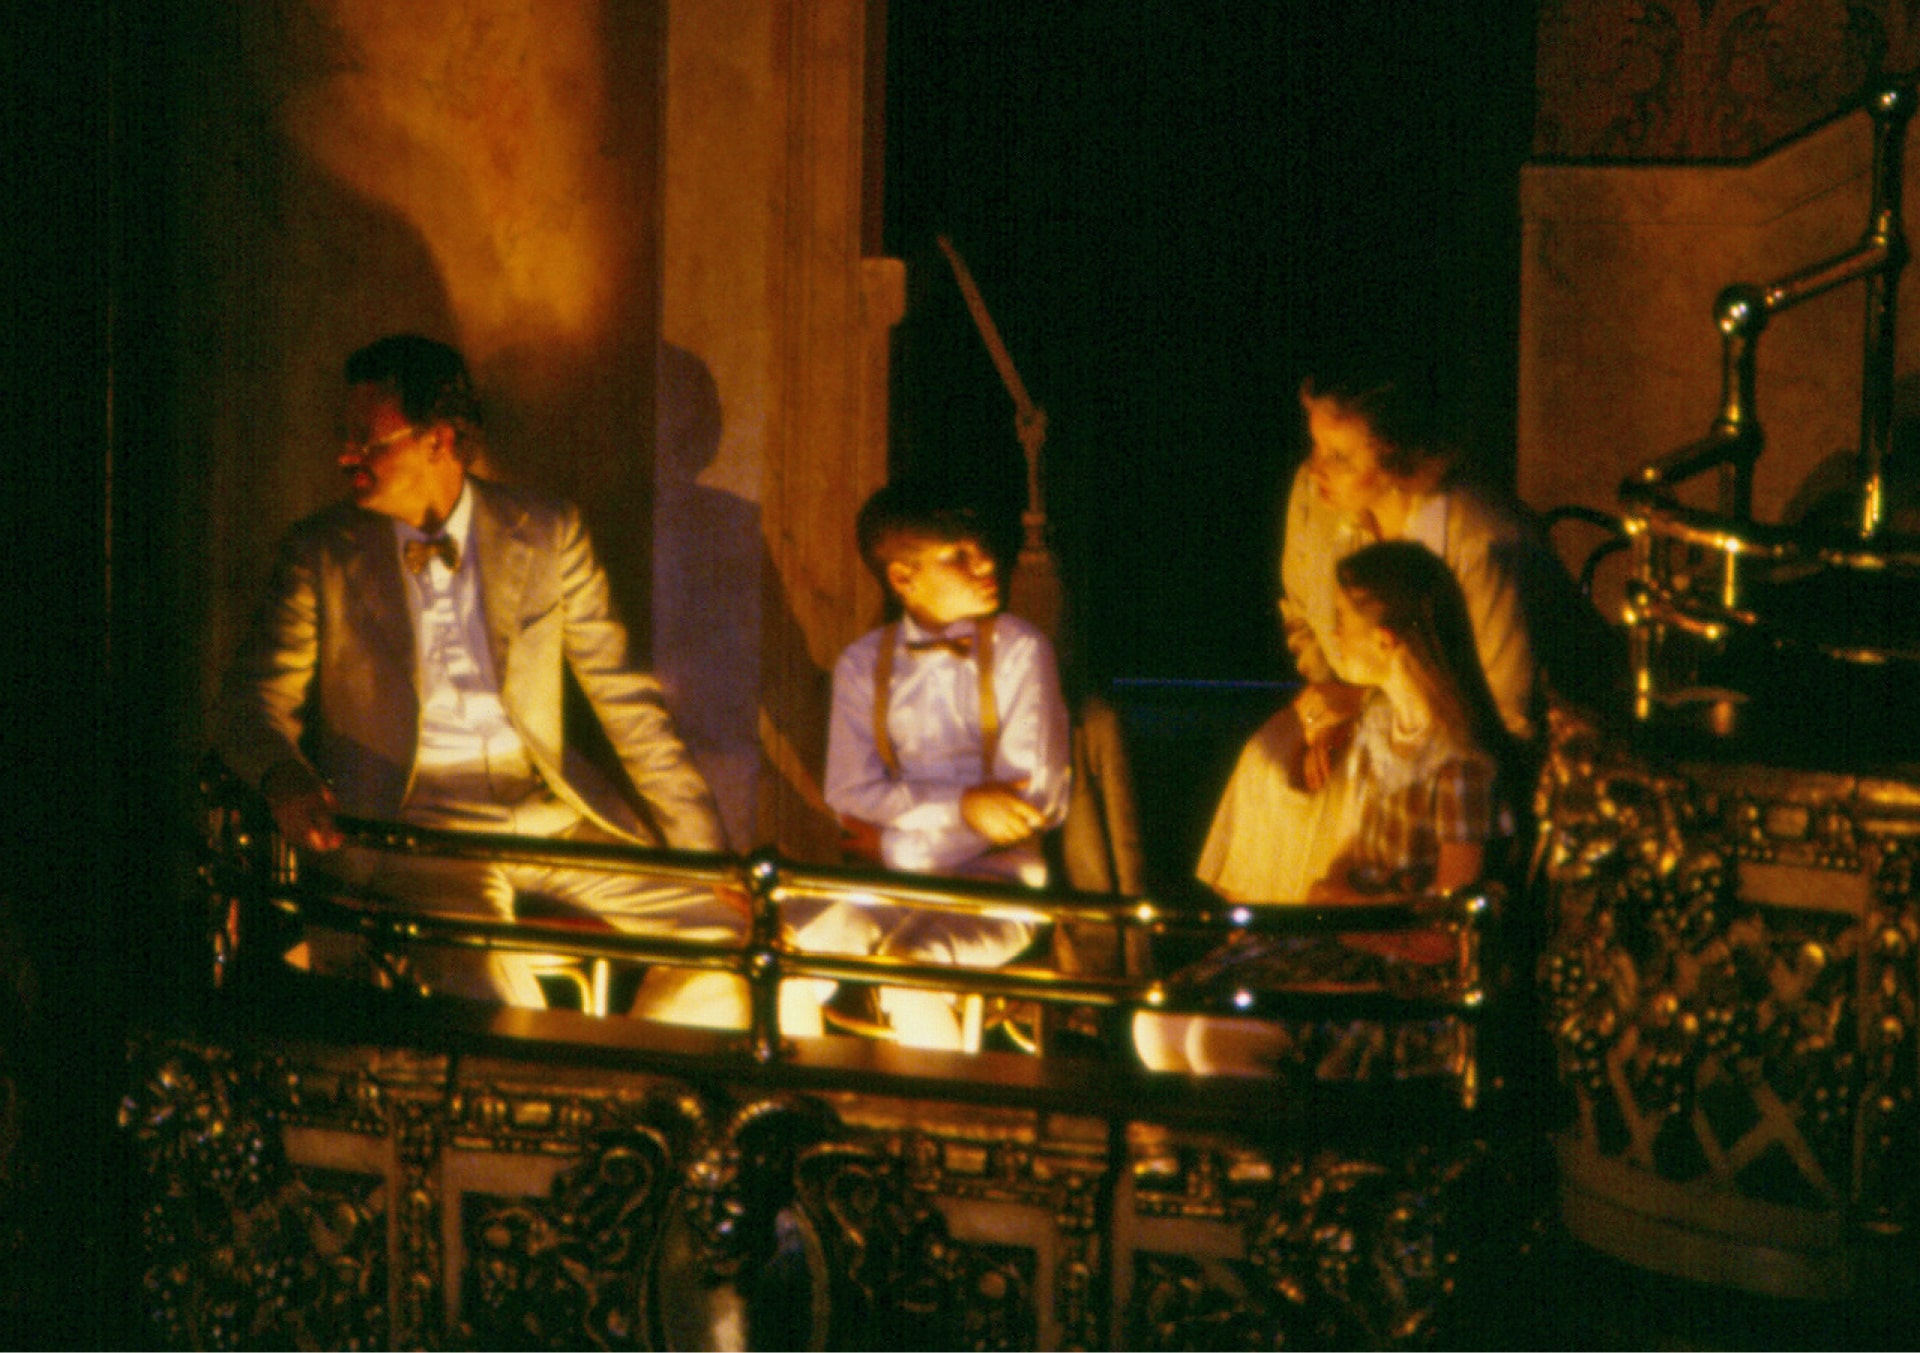 Family in theatre box with gold railings lit by lights at their feet look towards stage.